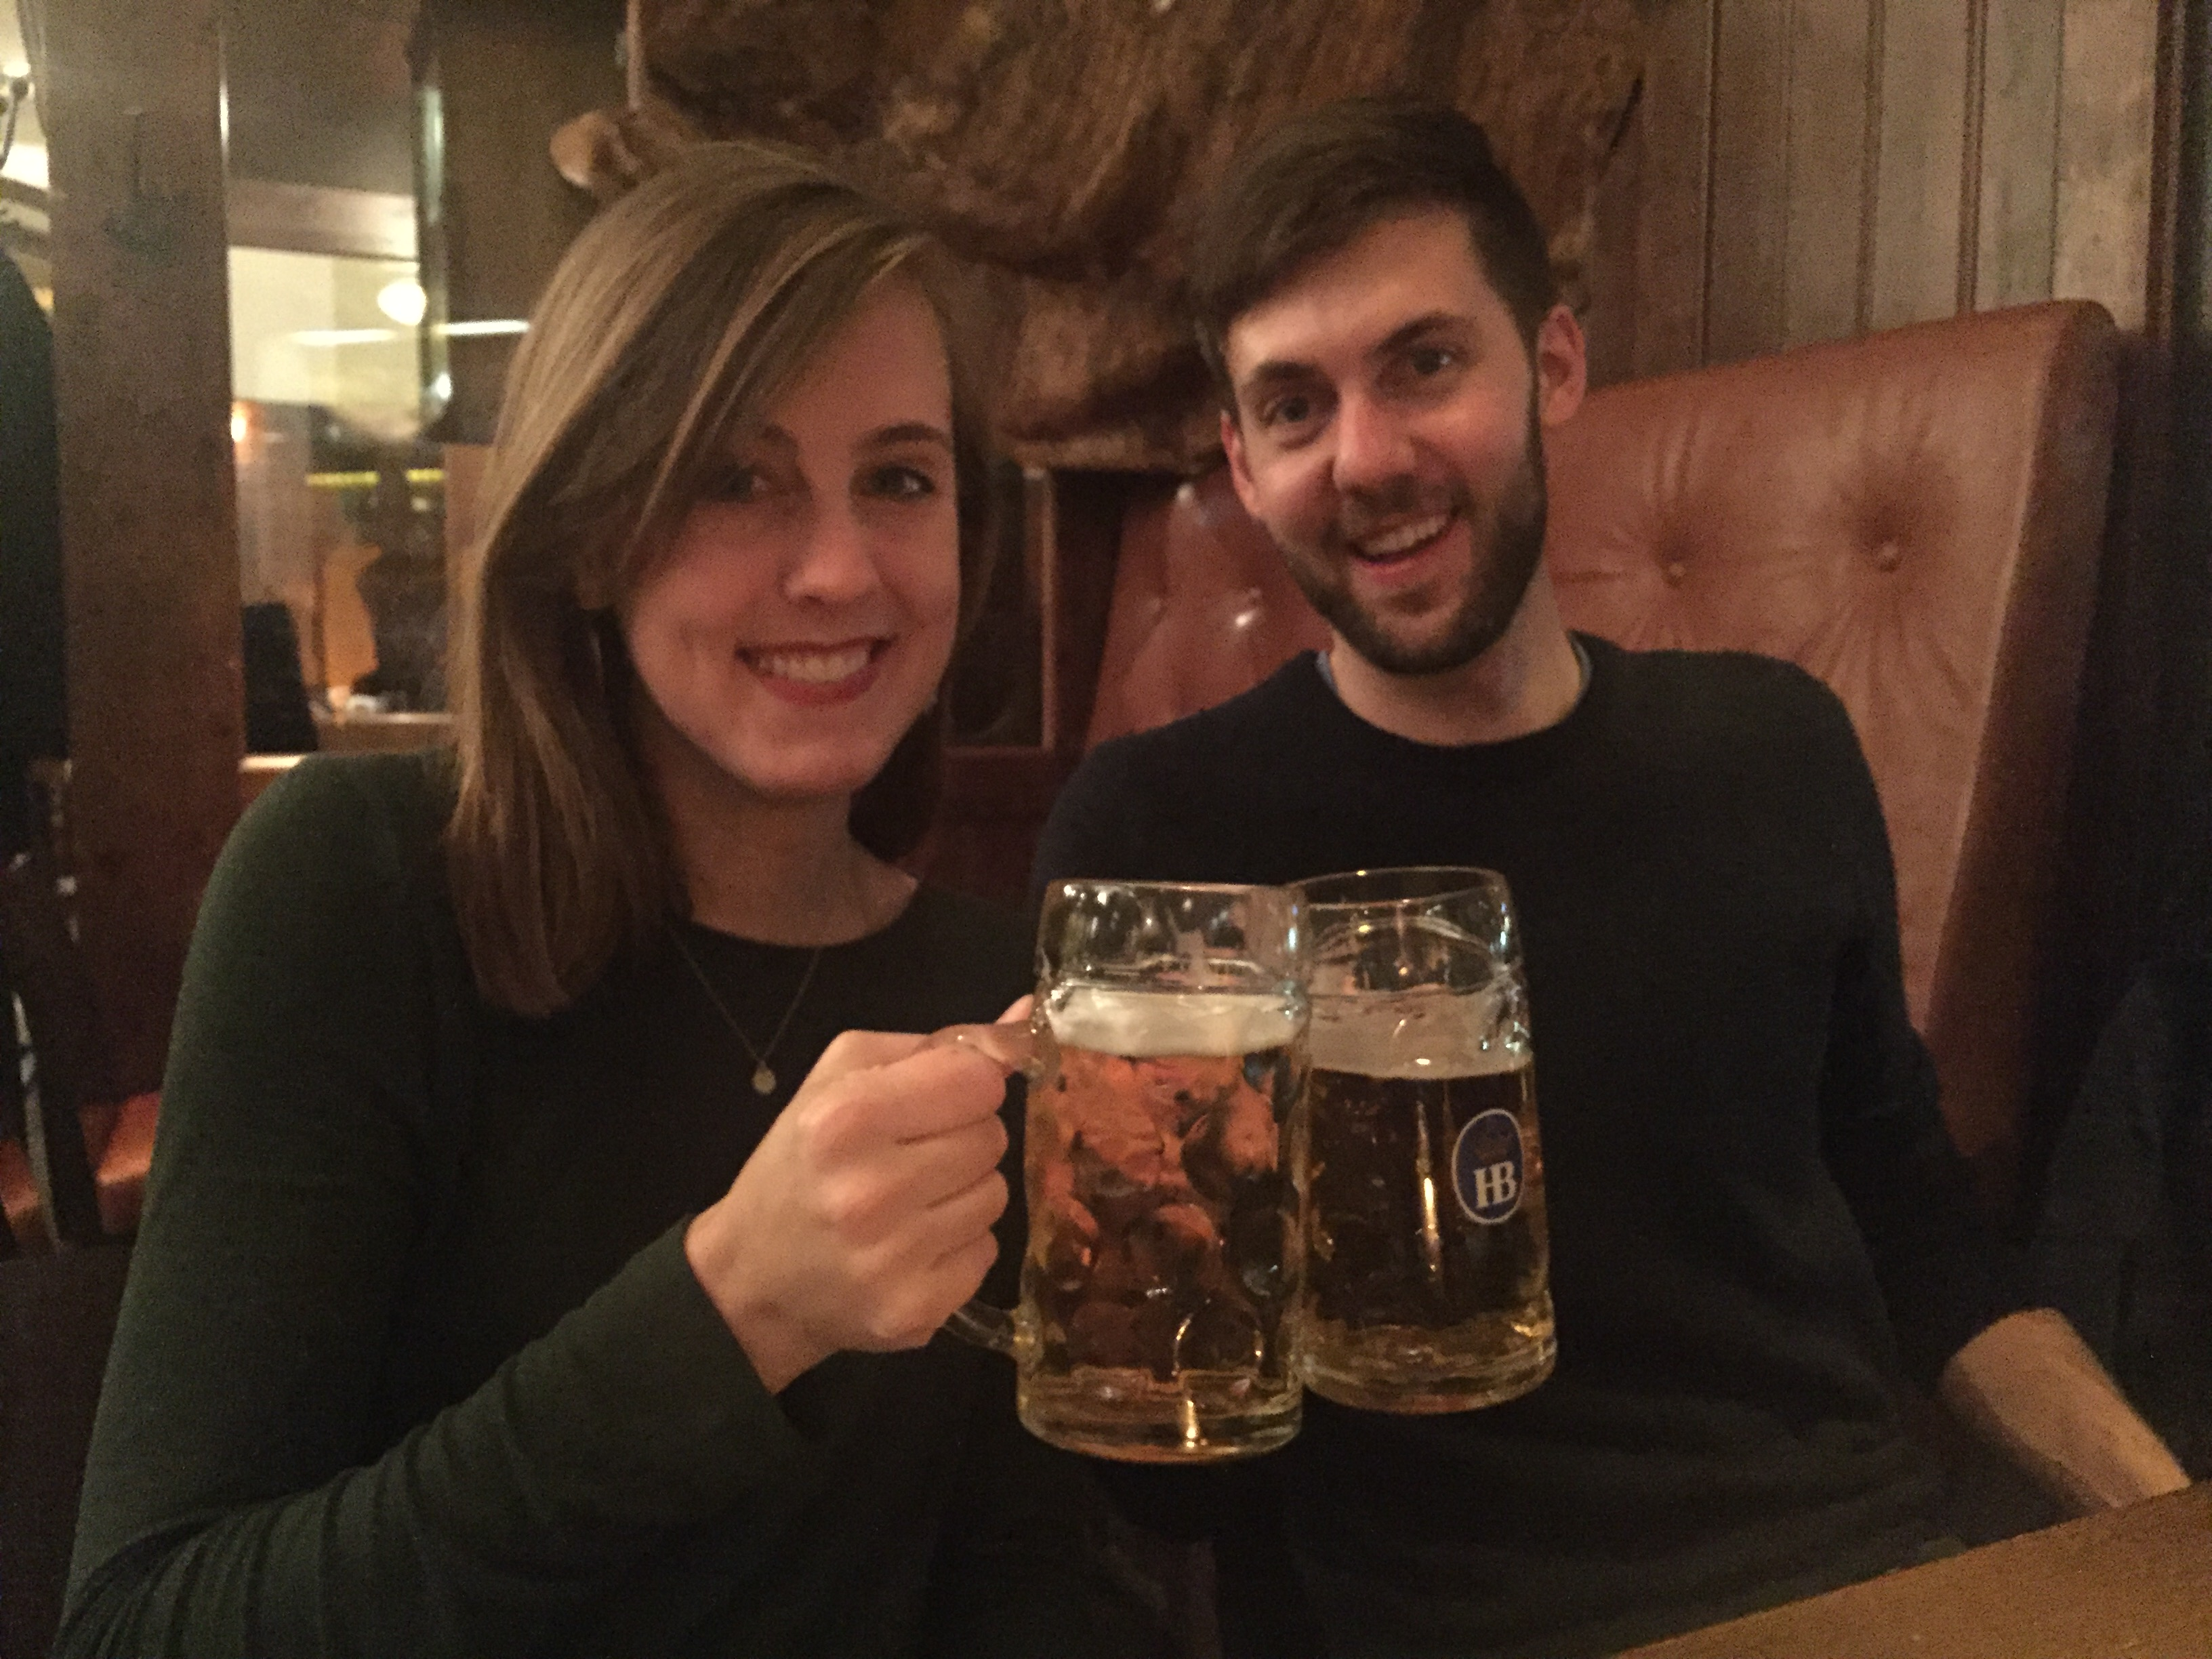 blog-When-Siblings-Re-Unite-in-Germany-Our-Three-Day-Tour-of-Munich-Germany-beer